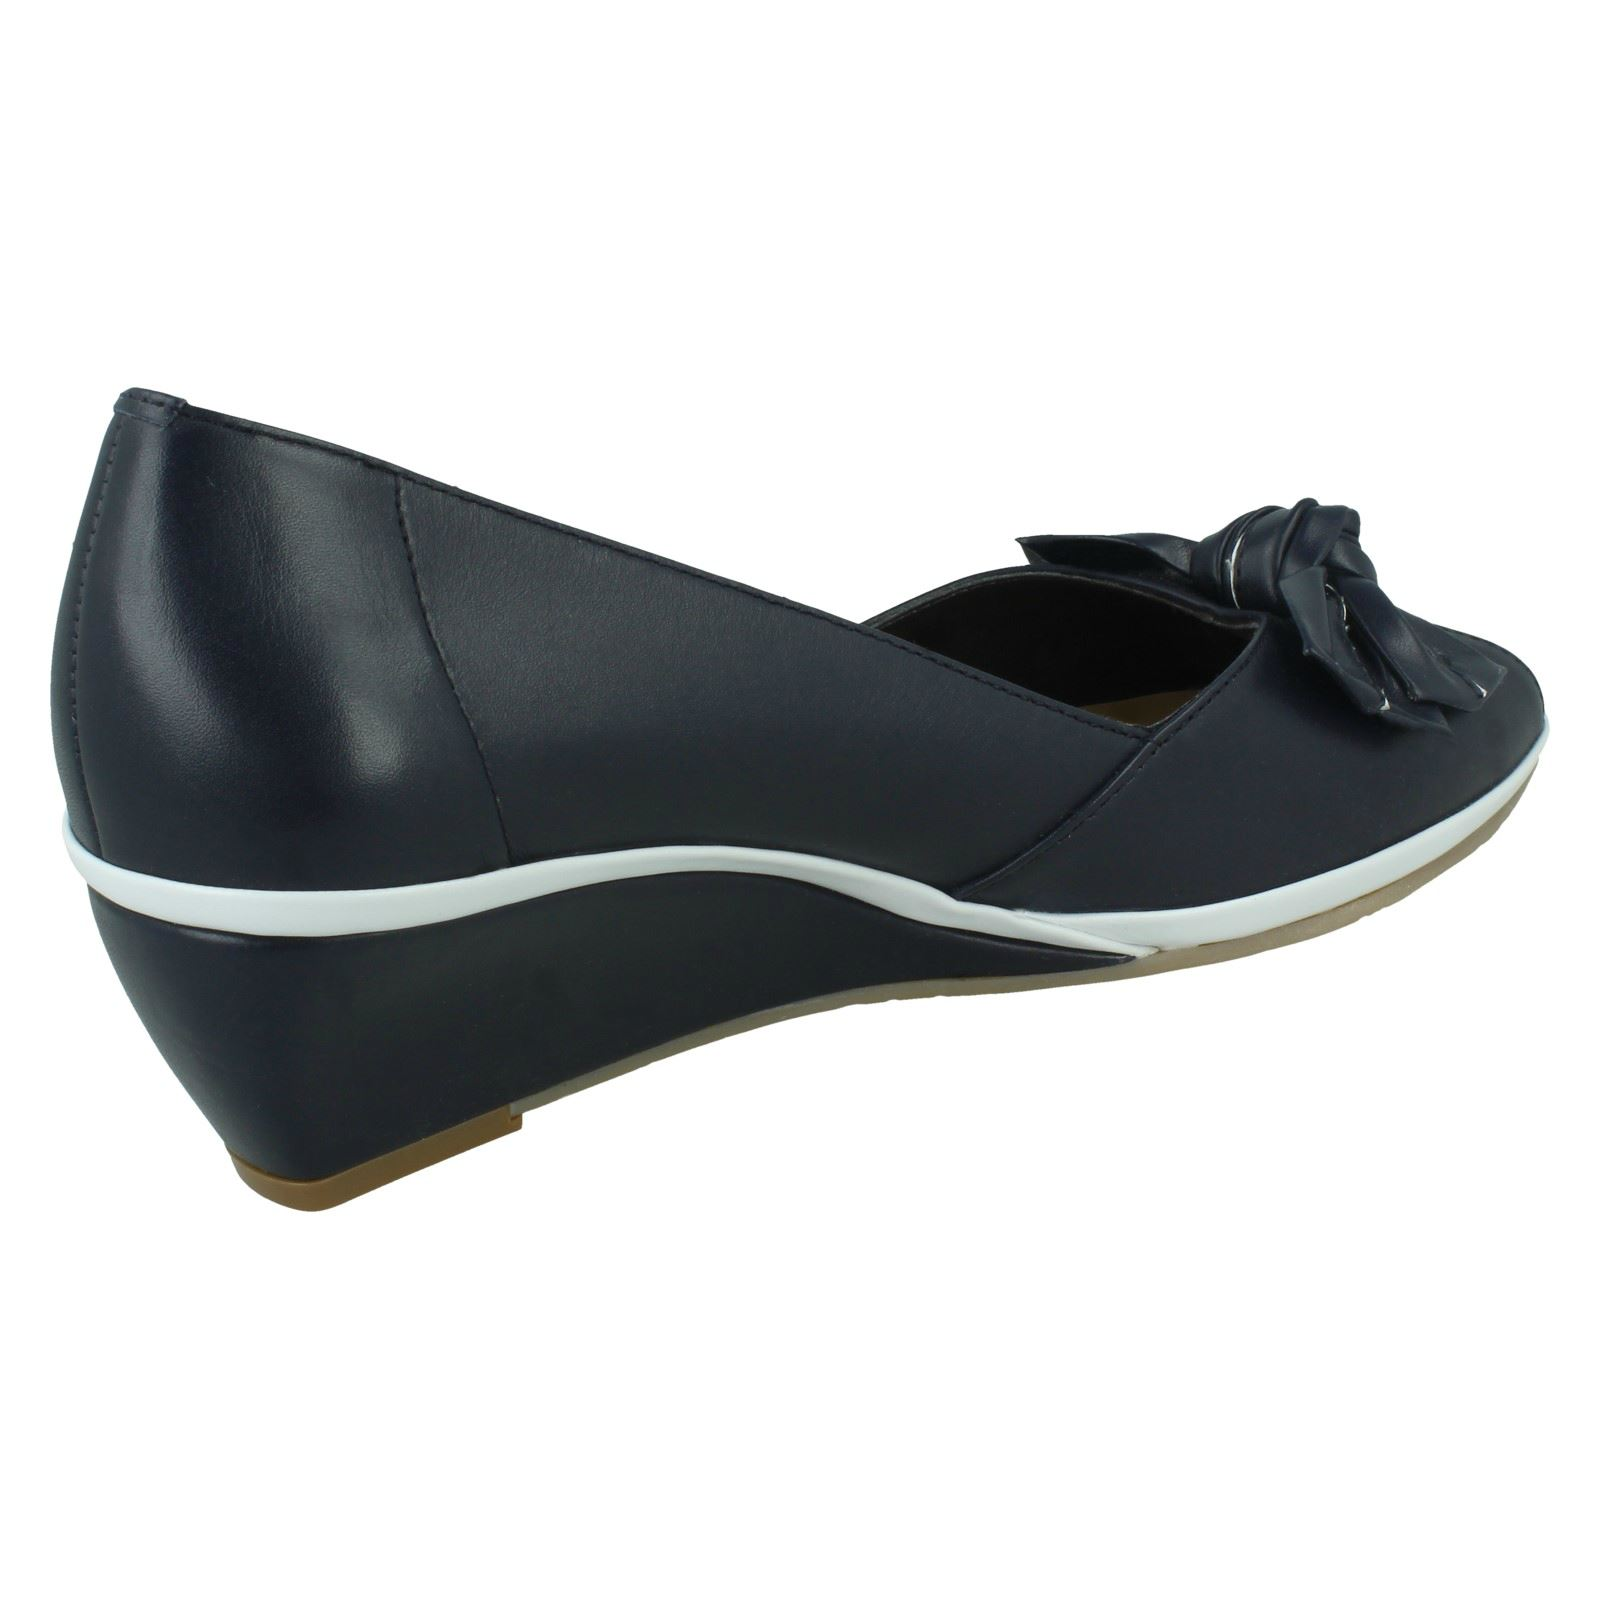 Ladies-Van-Dal-Casual-Peep-Toe-Wedges-Florida-II thumbnail 13